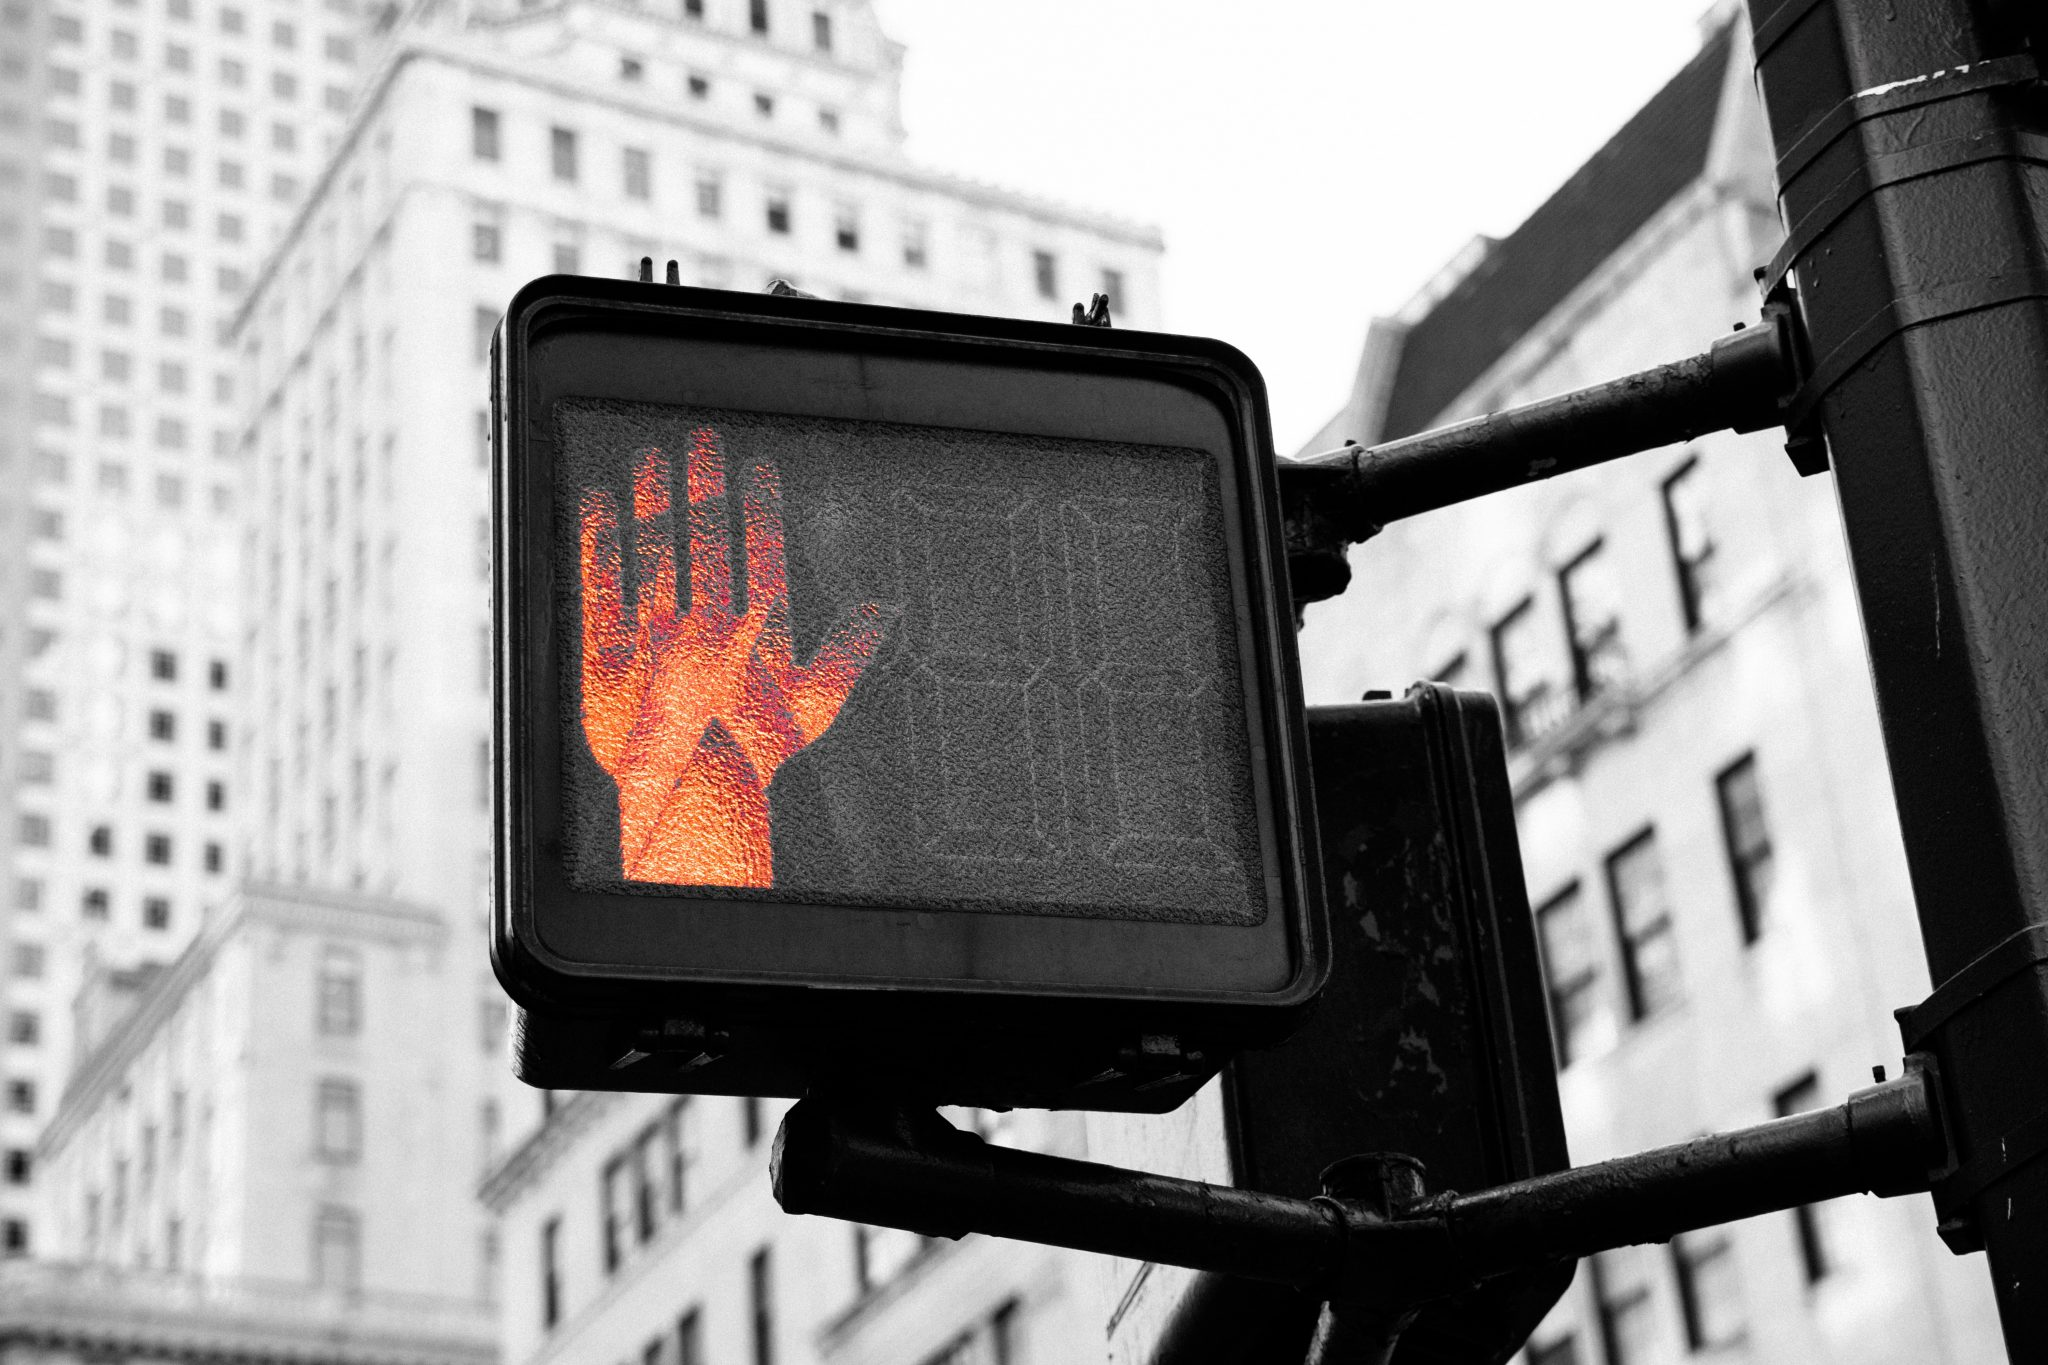 stop street sign with hand - Ledgersonline